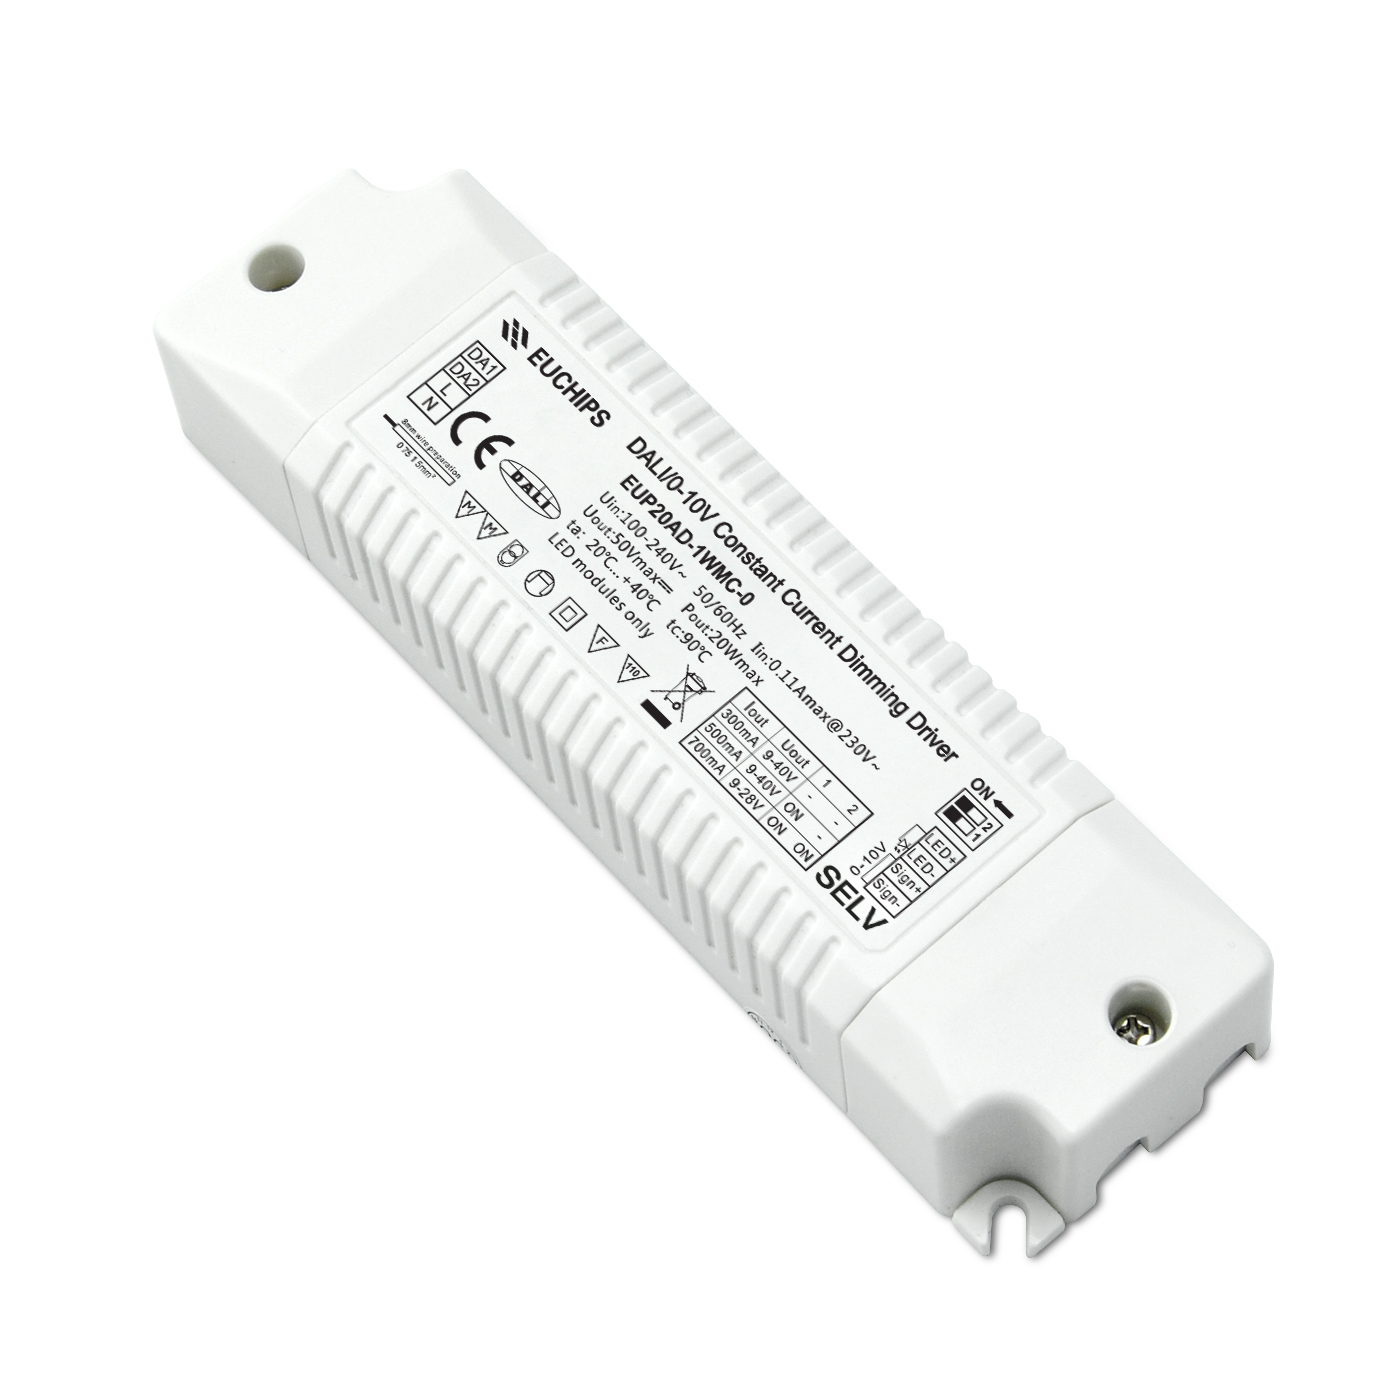 Personlized Products 8 Ways Dmx Splitter - 20W 300/500/700mA CC DALI&0-10V Driver – Euchips